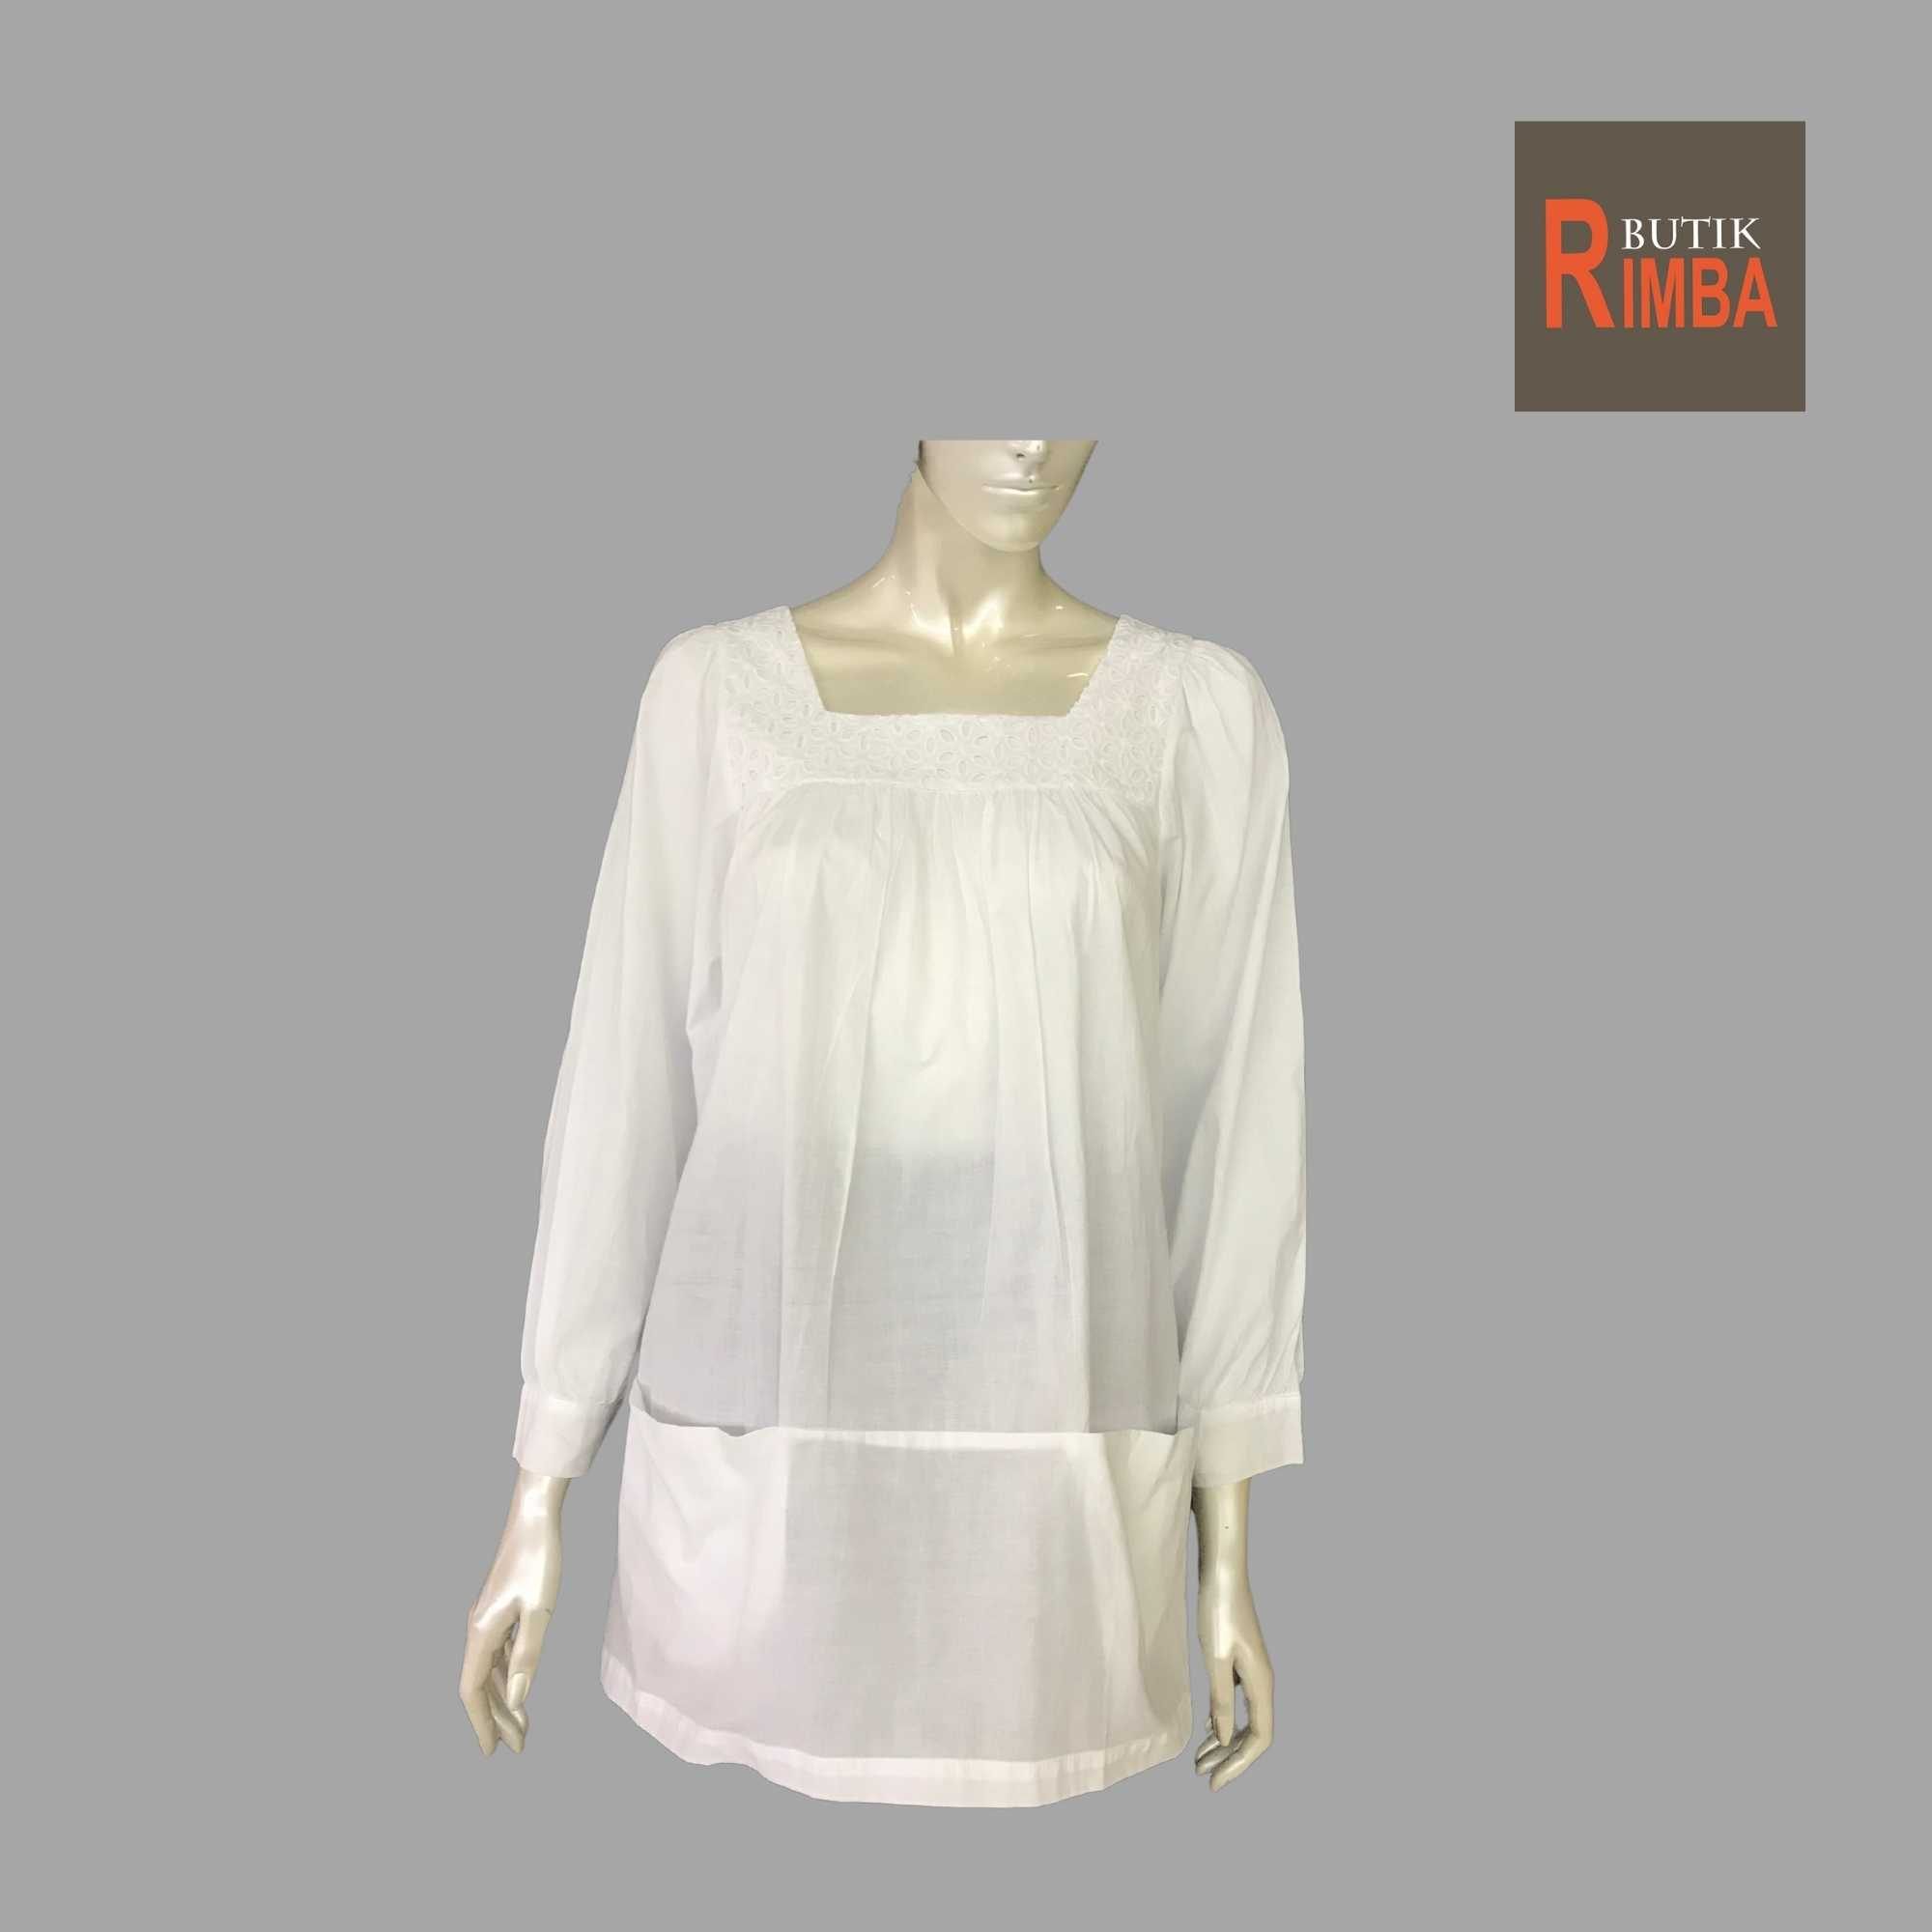 WOMEN CASUAL AND COMFORTABLE WHITE BLOUSE COTTON FREE SIZE PATTERN 08